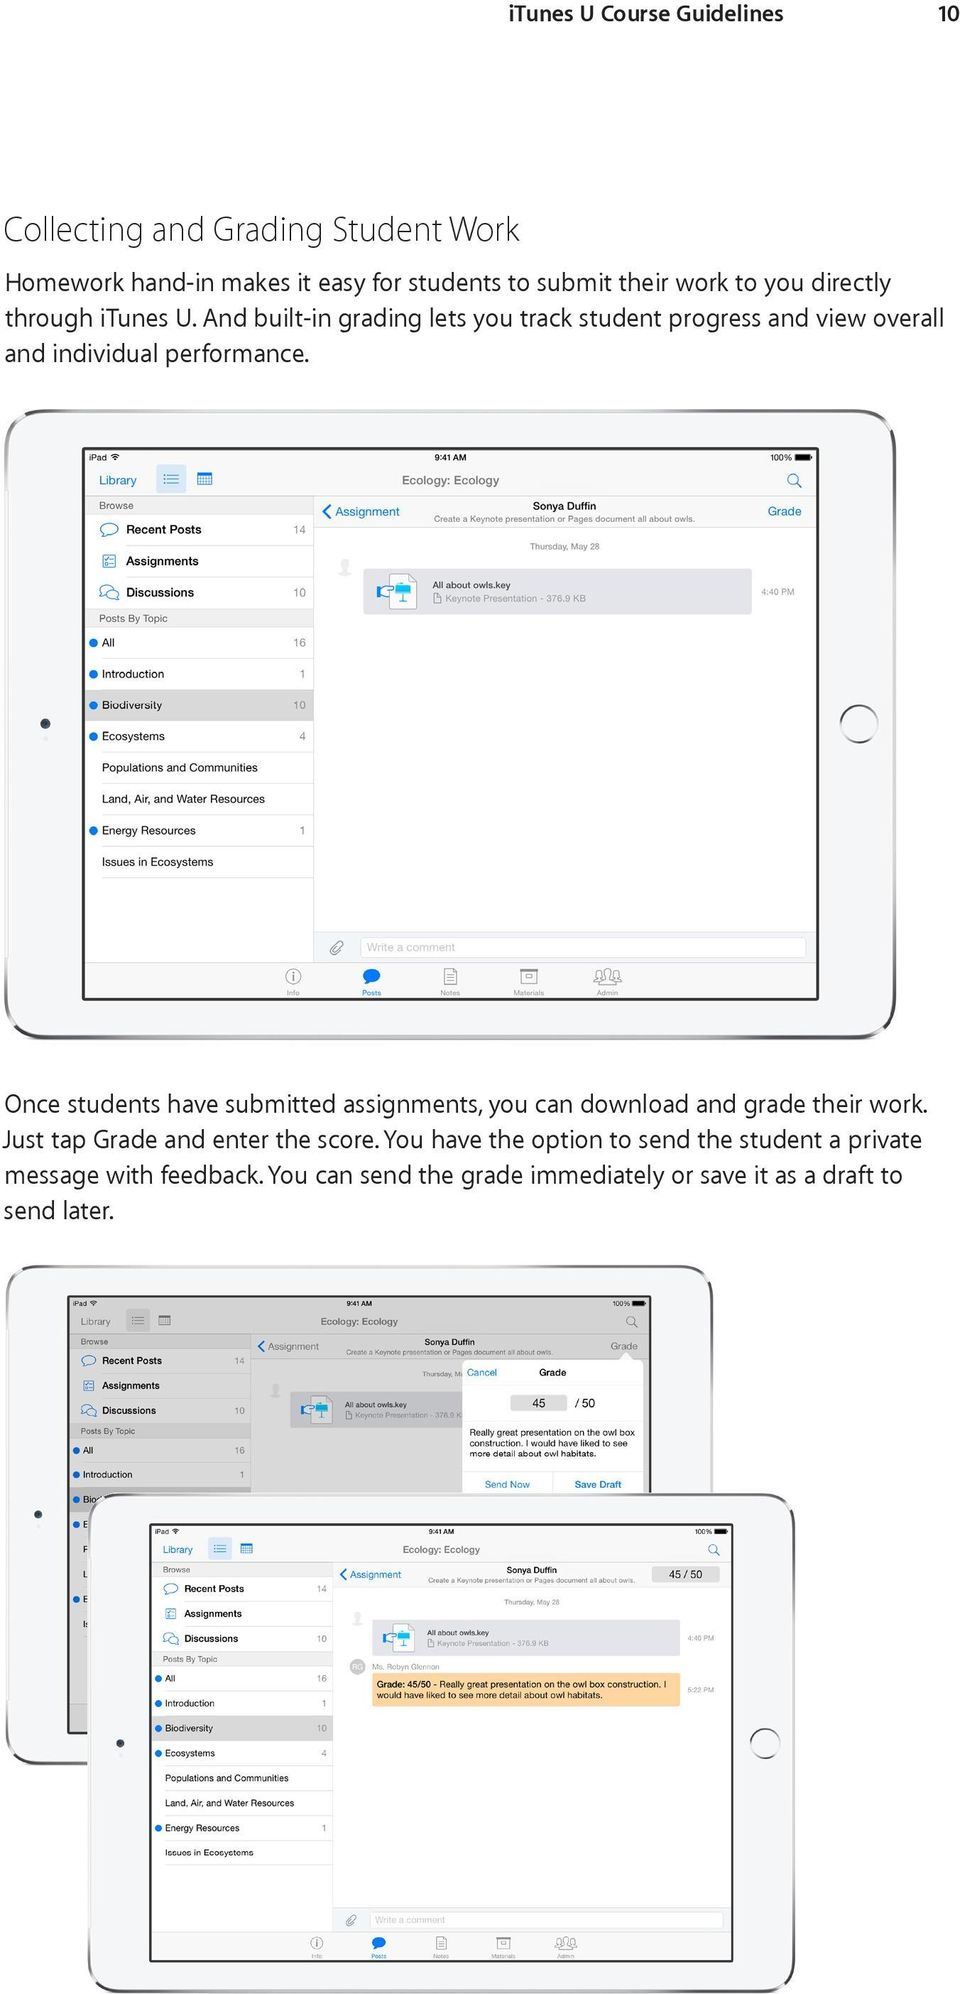 Once students have submitted assignments, you can download and grade their work. Just tap Grade and enter the score.